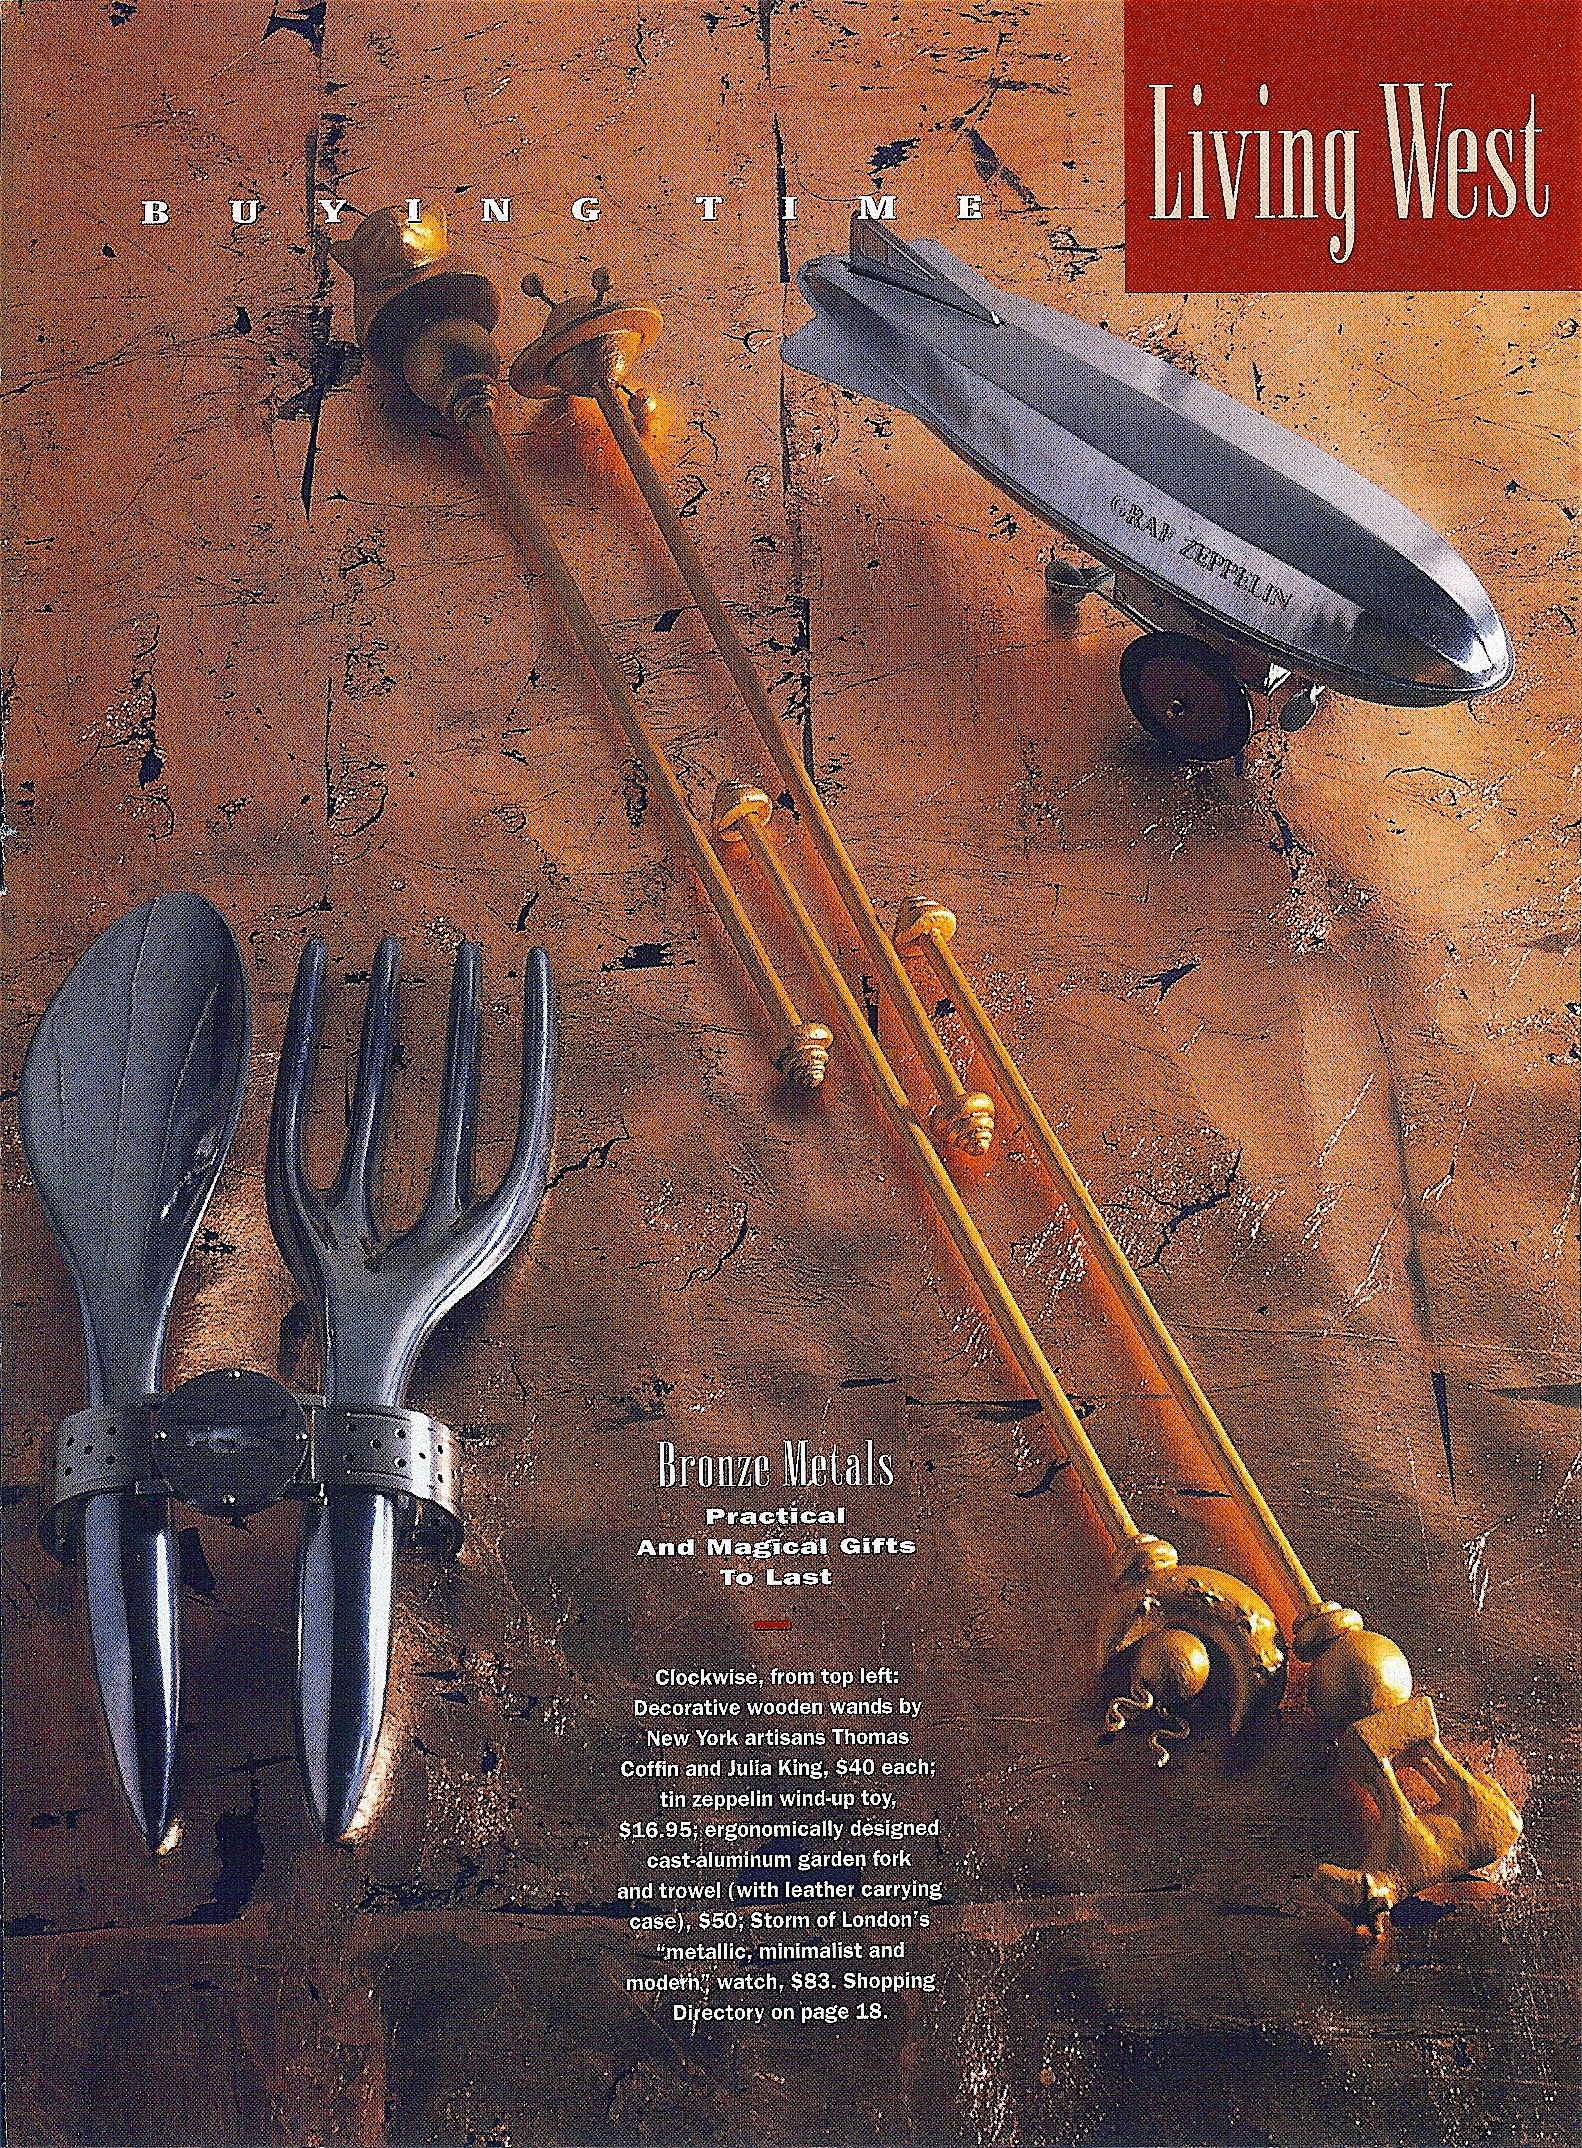 Coffin & King Press - Coffin & King Decorative Wands featured in Western Living Magazine - Vancouver, British Columbia